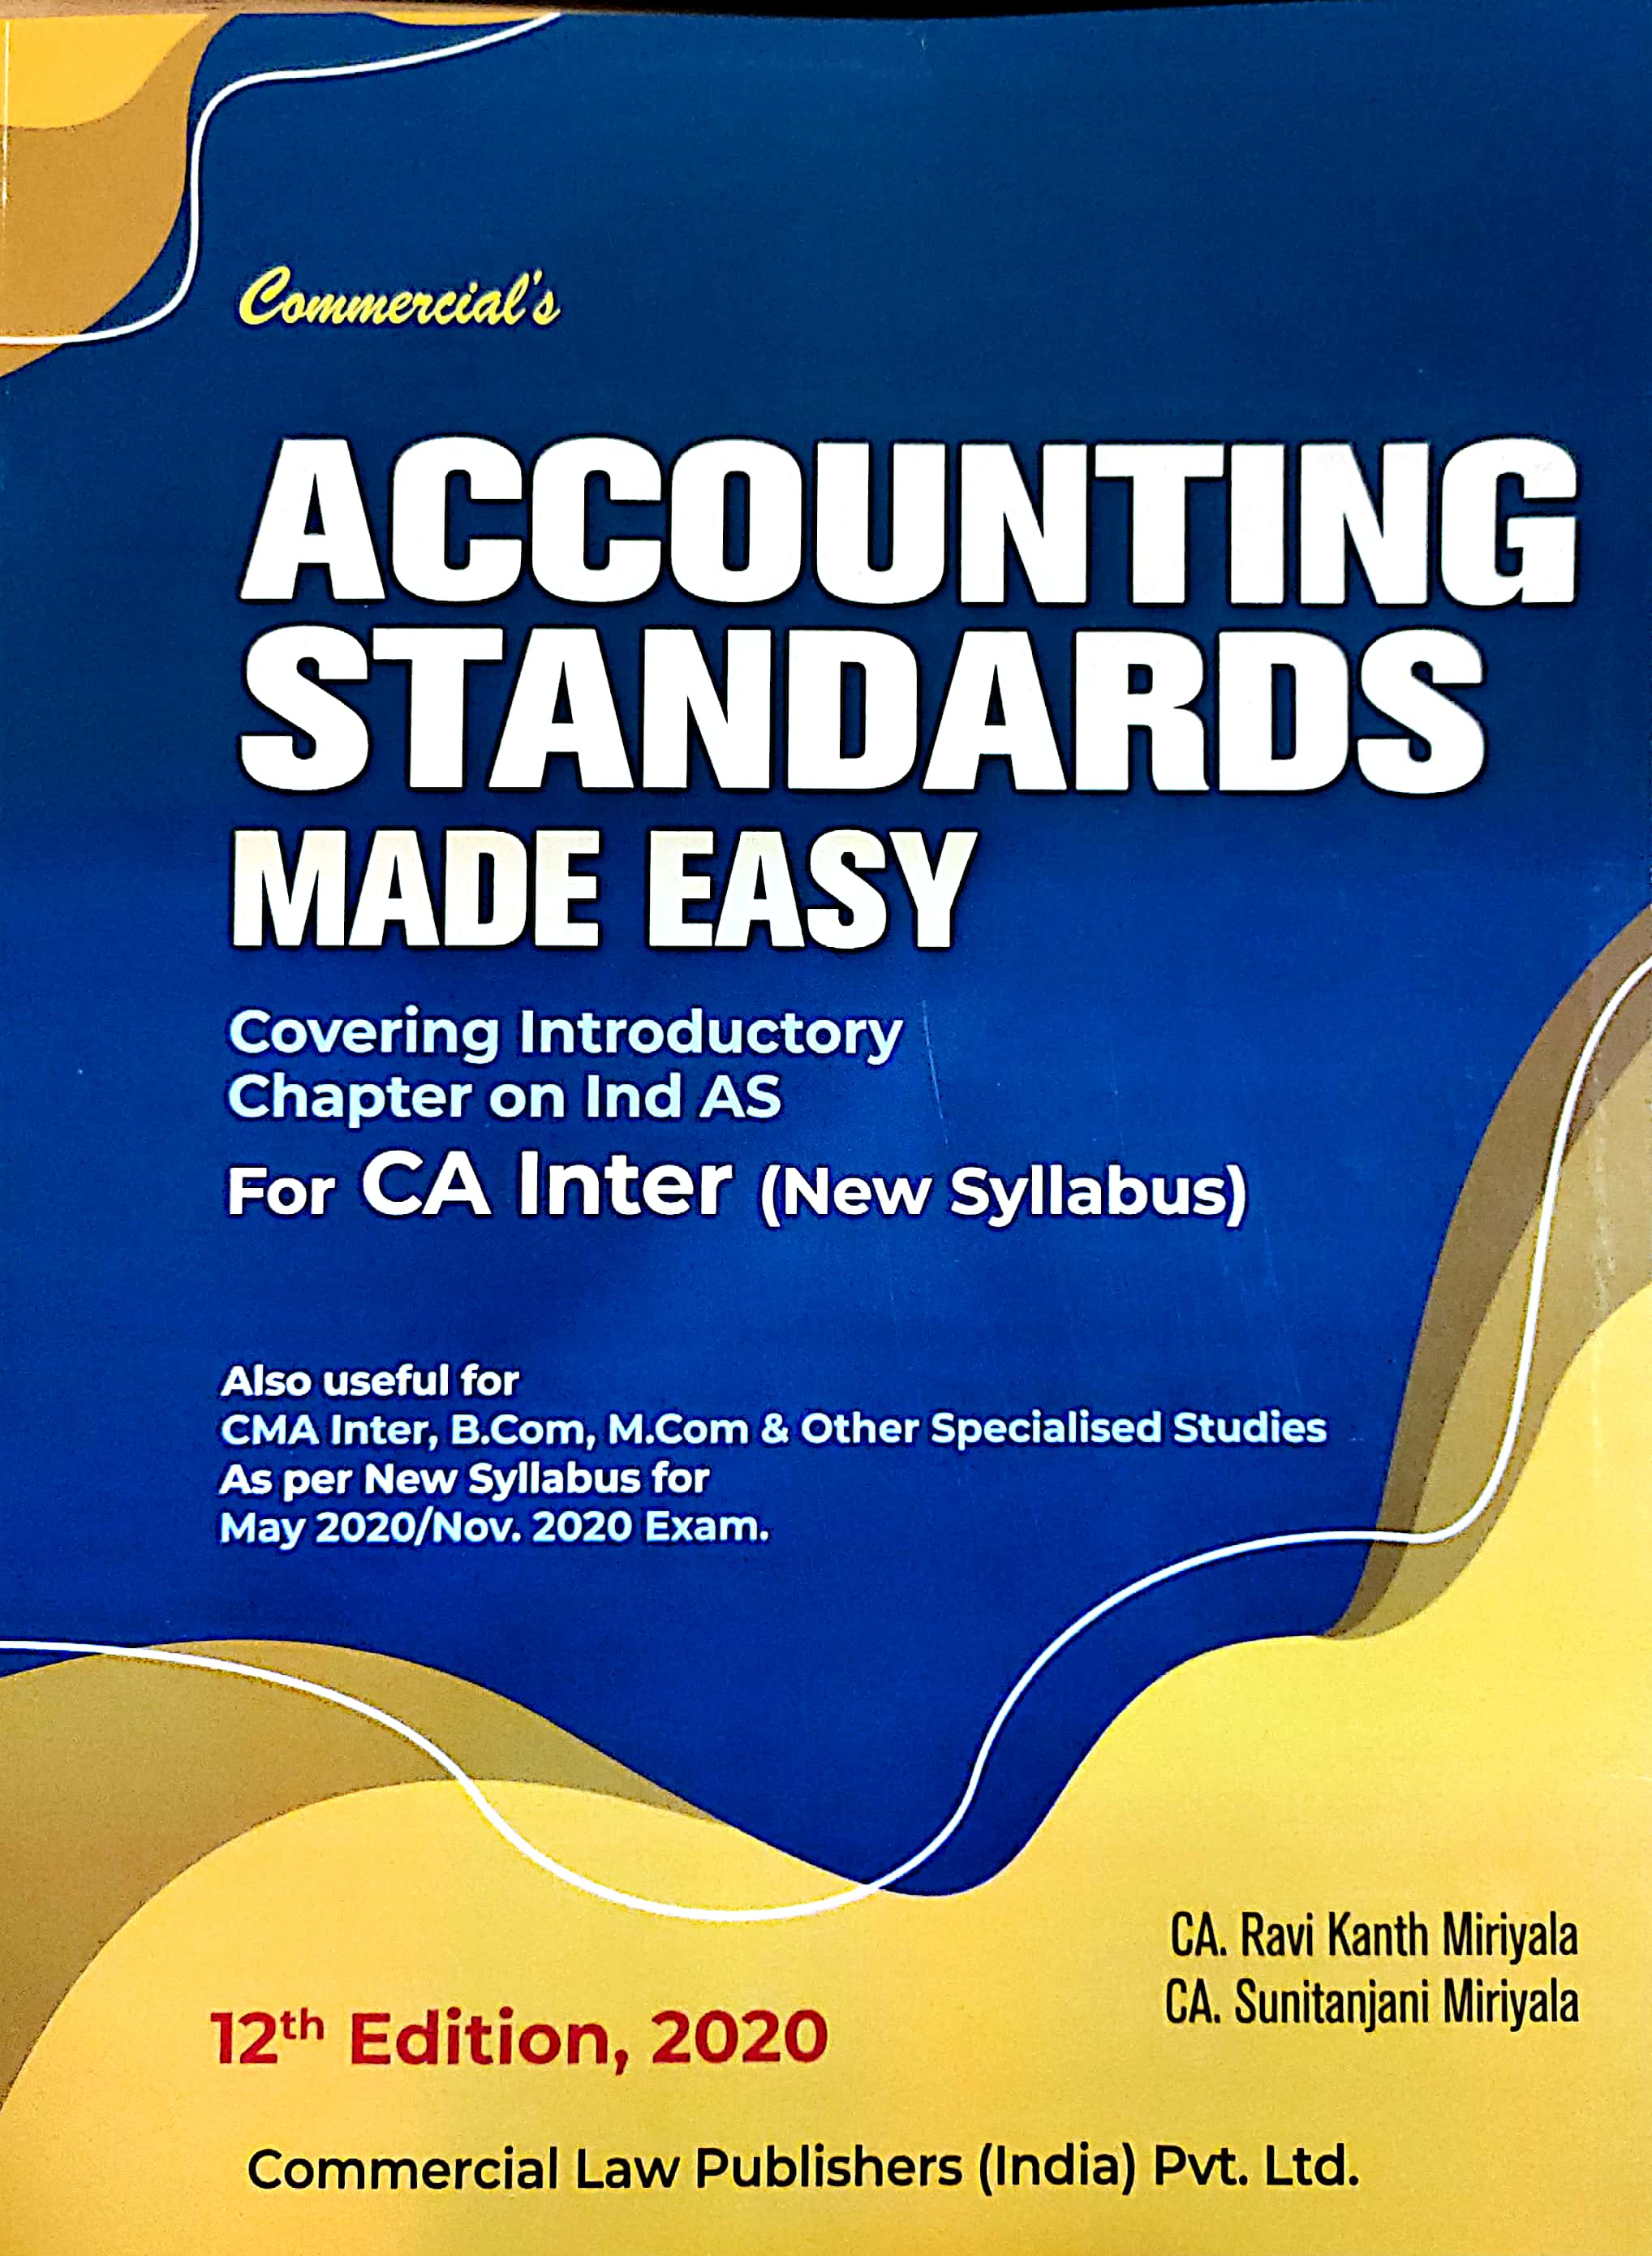 Commercial CA Inter Accounting Standards Made Easy New Syllabus By Ravi Kant Miriyala, Sunitanjani Miriyala Applicable for May 2020 / November 2020 Exam